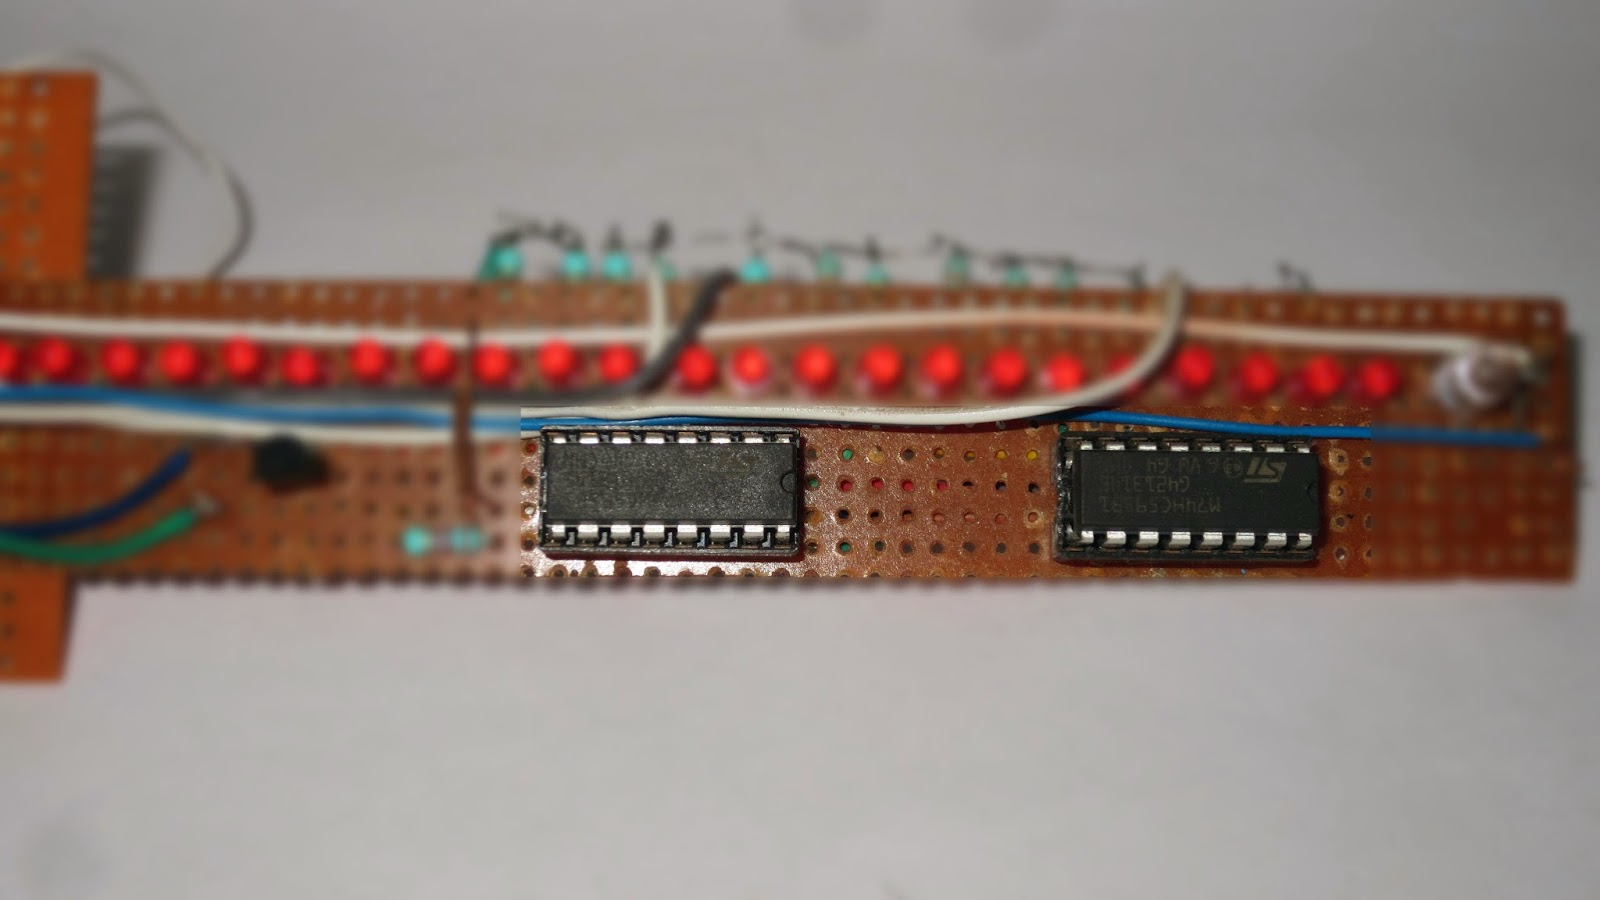 Arduino Electronics Make A Propeller Clock Using Led Circuit Add Two Shift Register In The